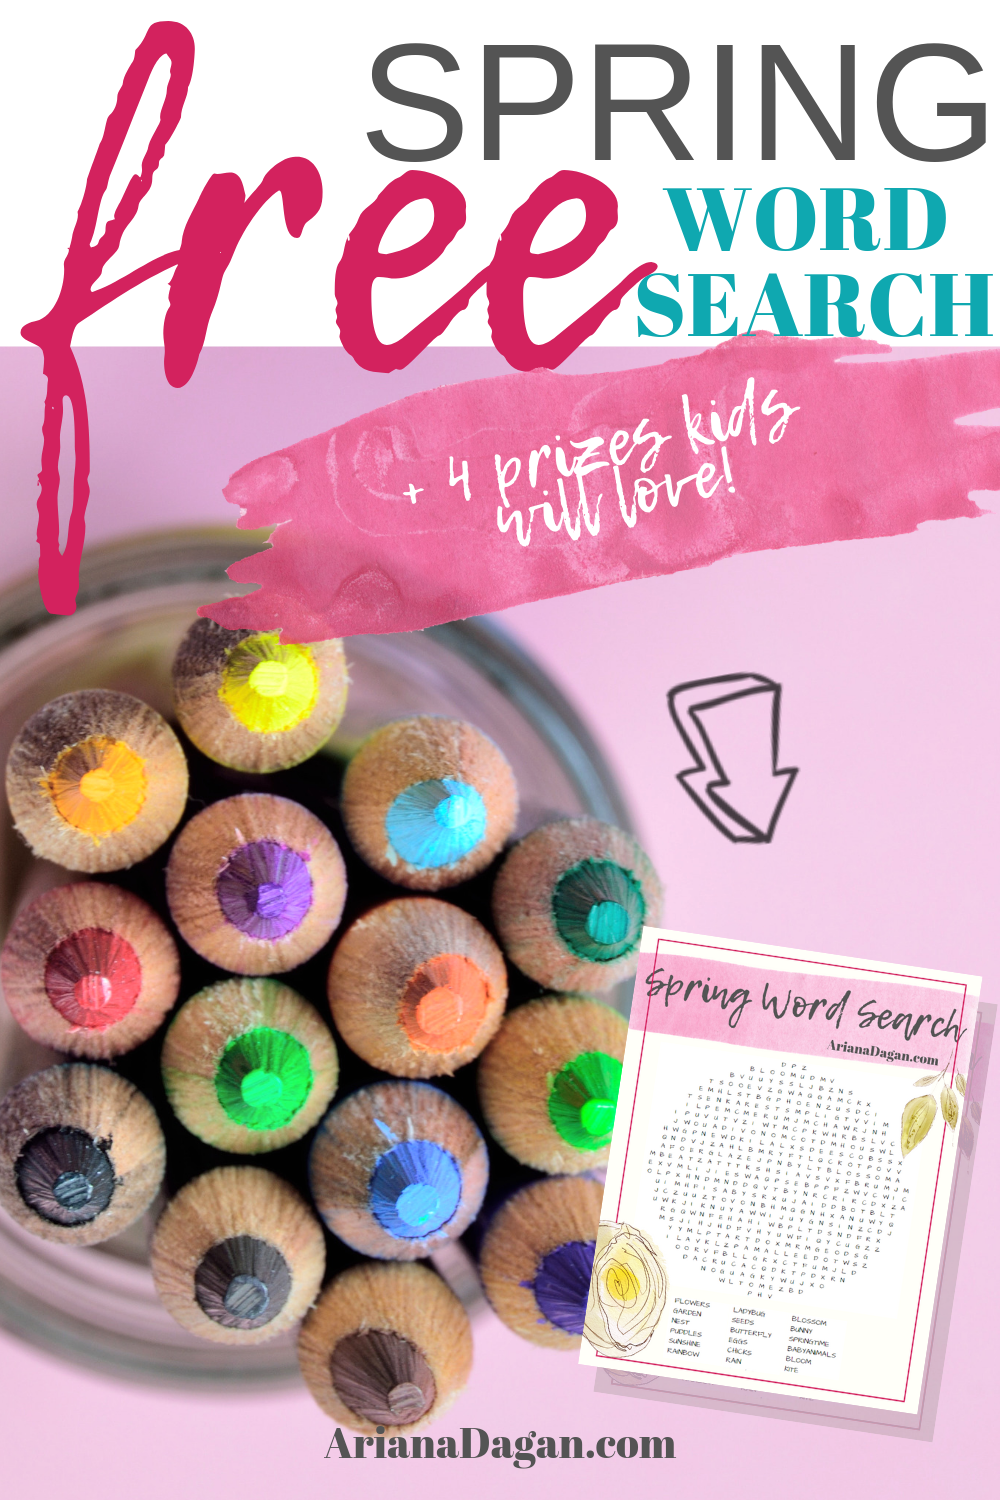 Free Spring Word Search printable by ariana dagan